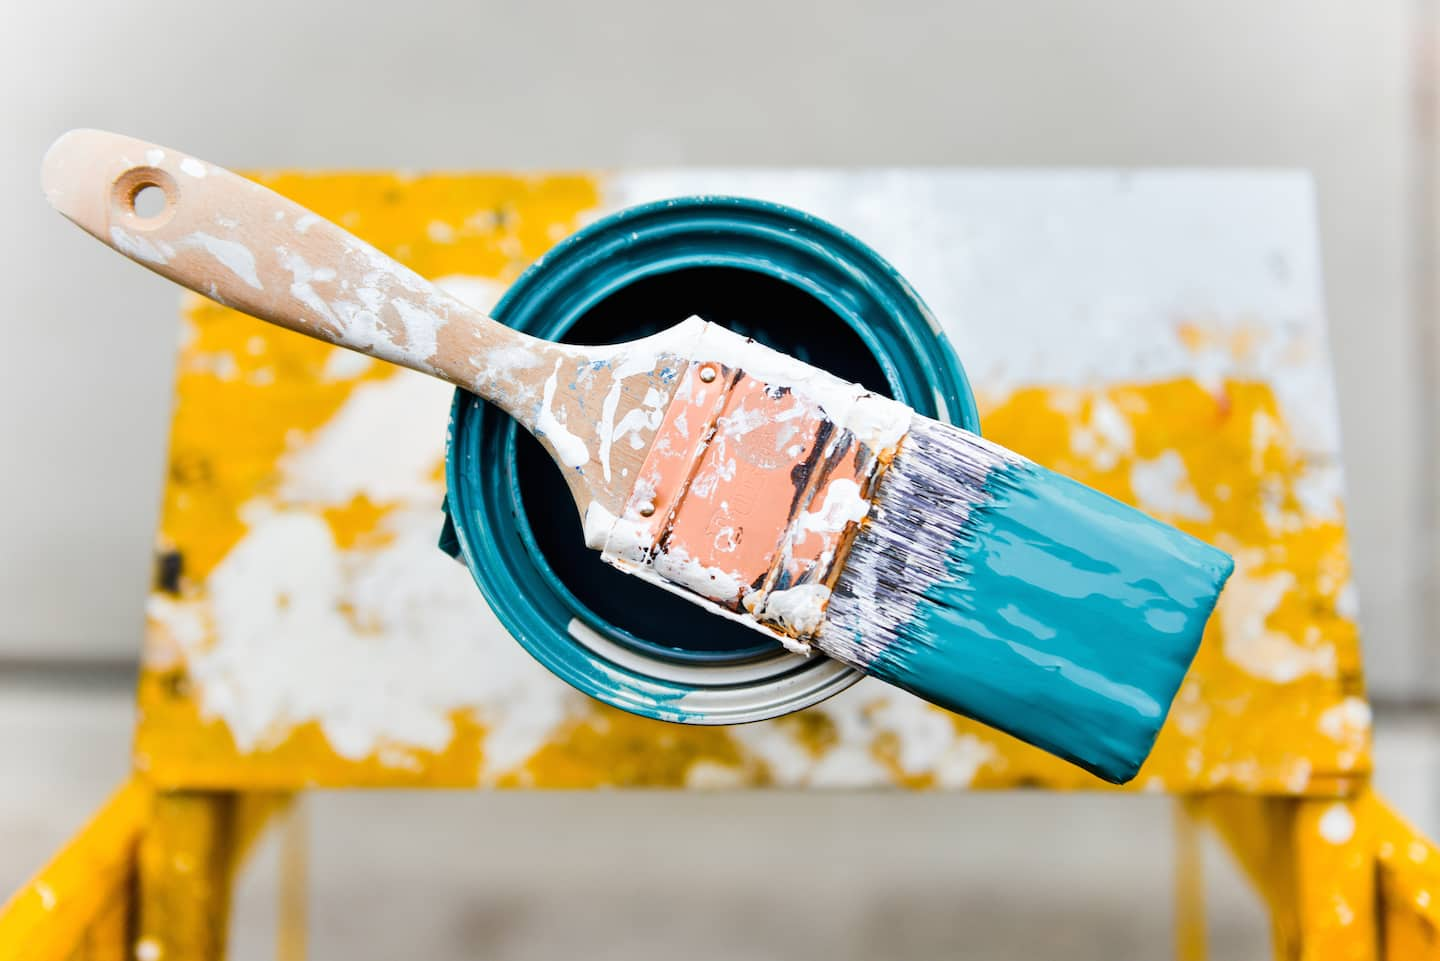 Average Cost To Paint A Living Room Part - 45: Wet Paint Brush On Paint Can